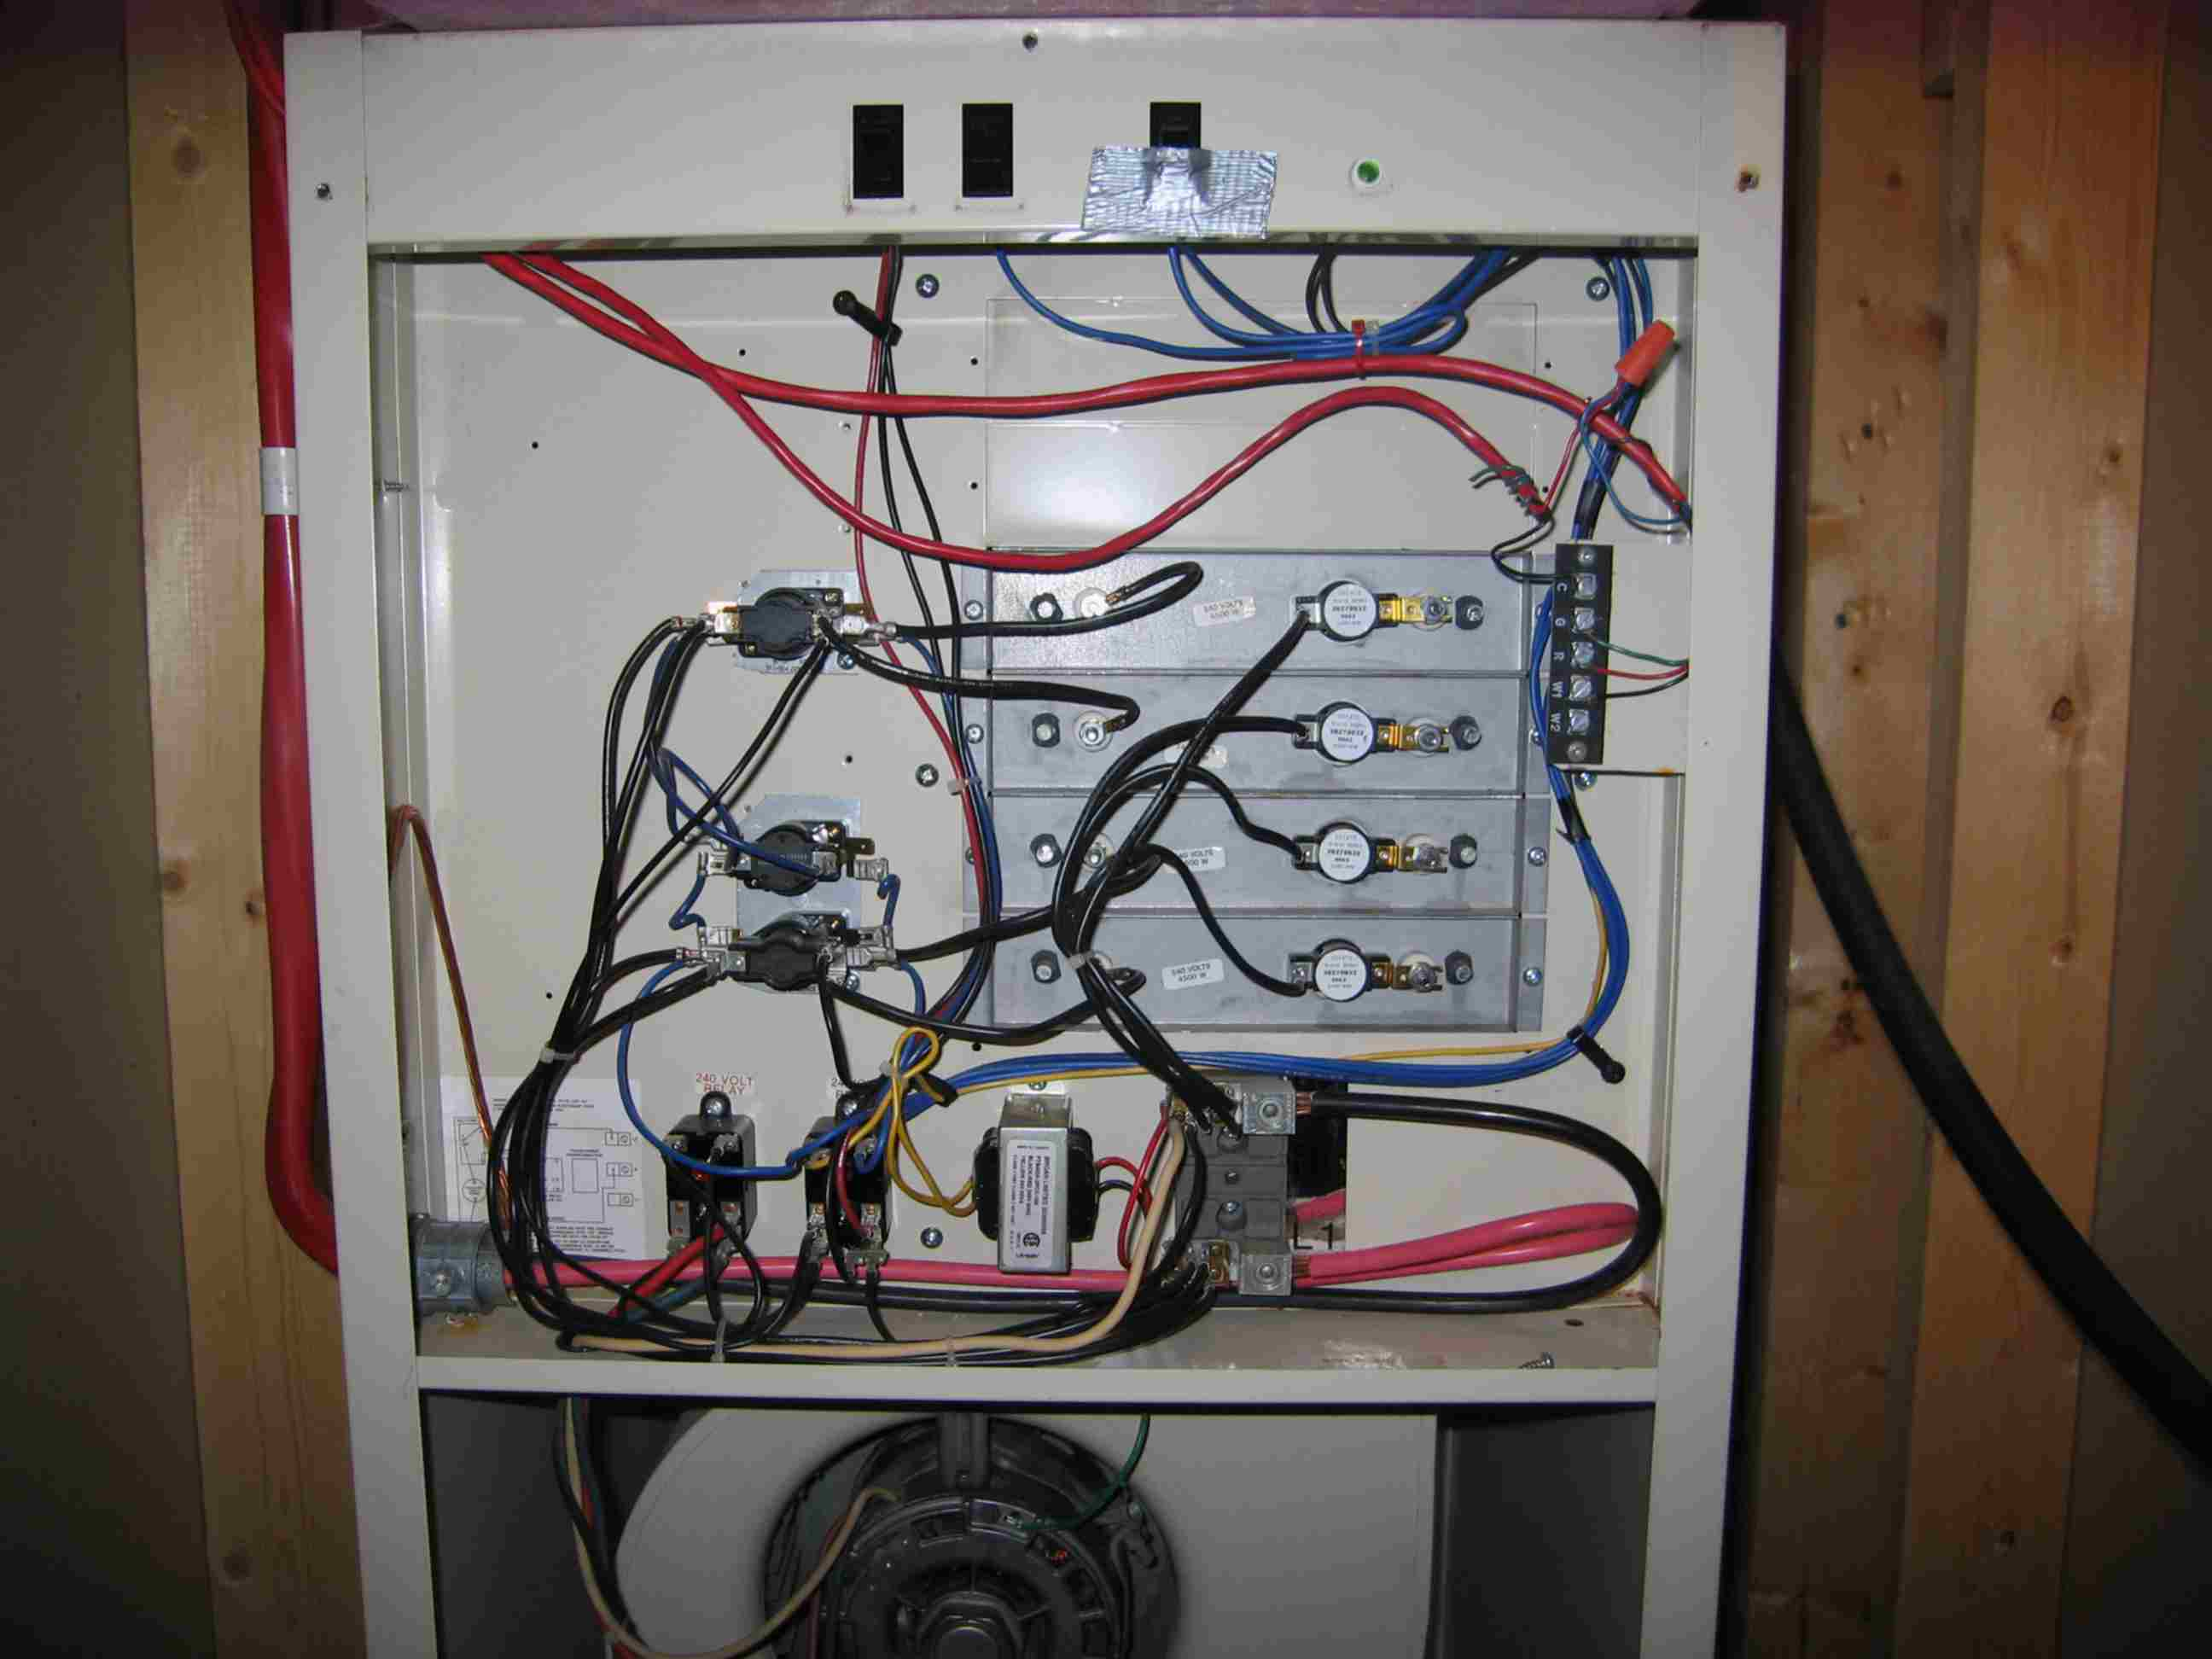 Troubleshoot Nortan Electrical Furnace